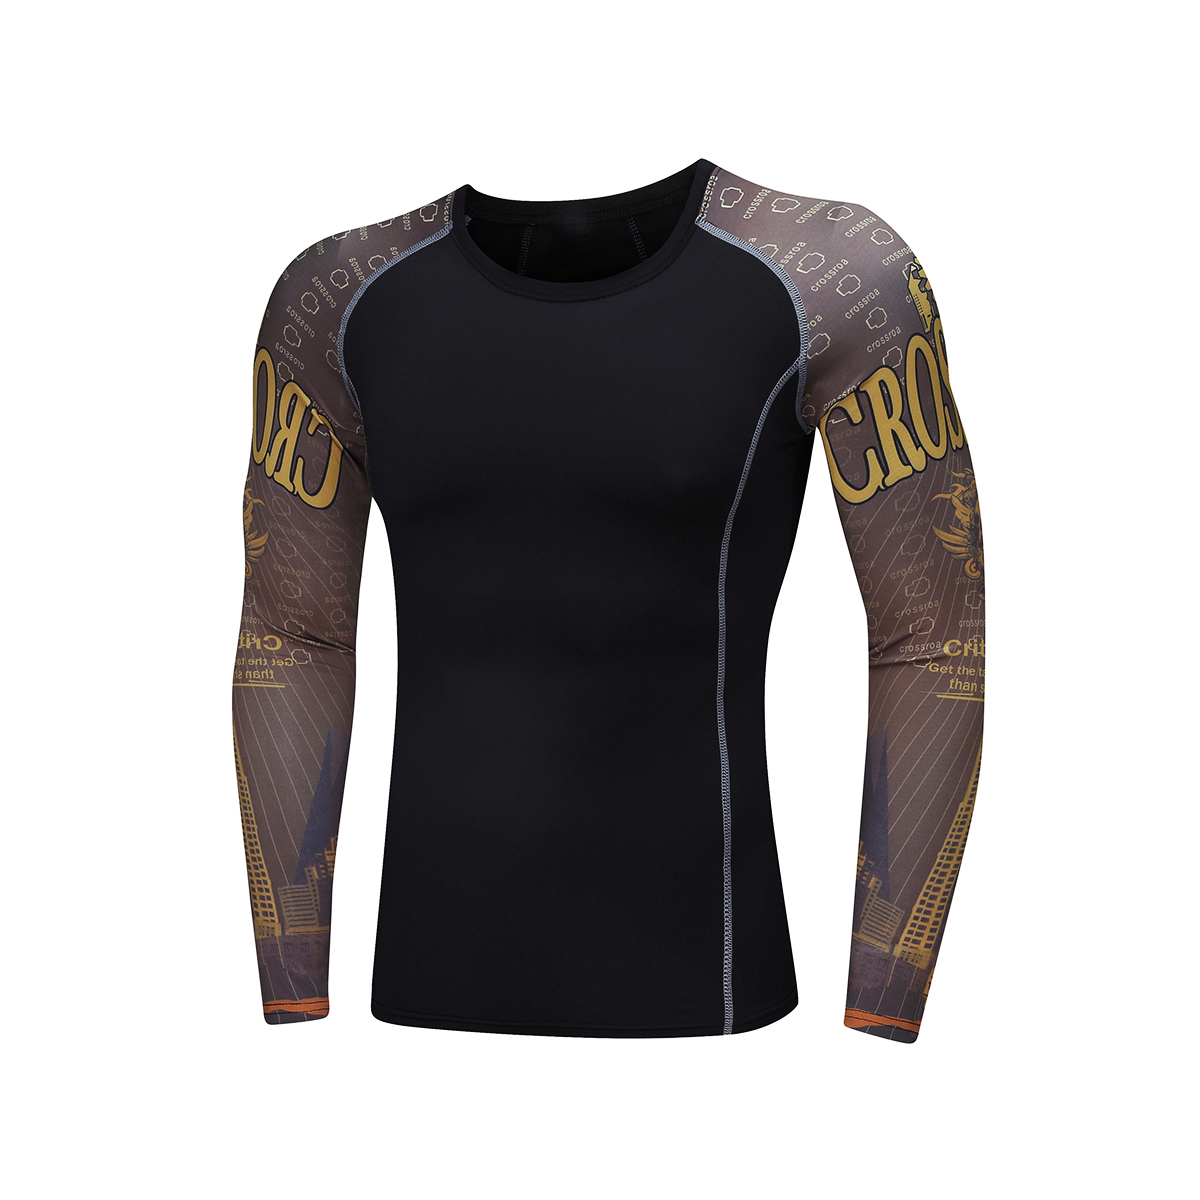 Weight Lifting Men s Compression Tights T Shirt Jersey Fitness Long Sleeve Moisture Wicking Quick drying T shirt(China (Mainland))